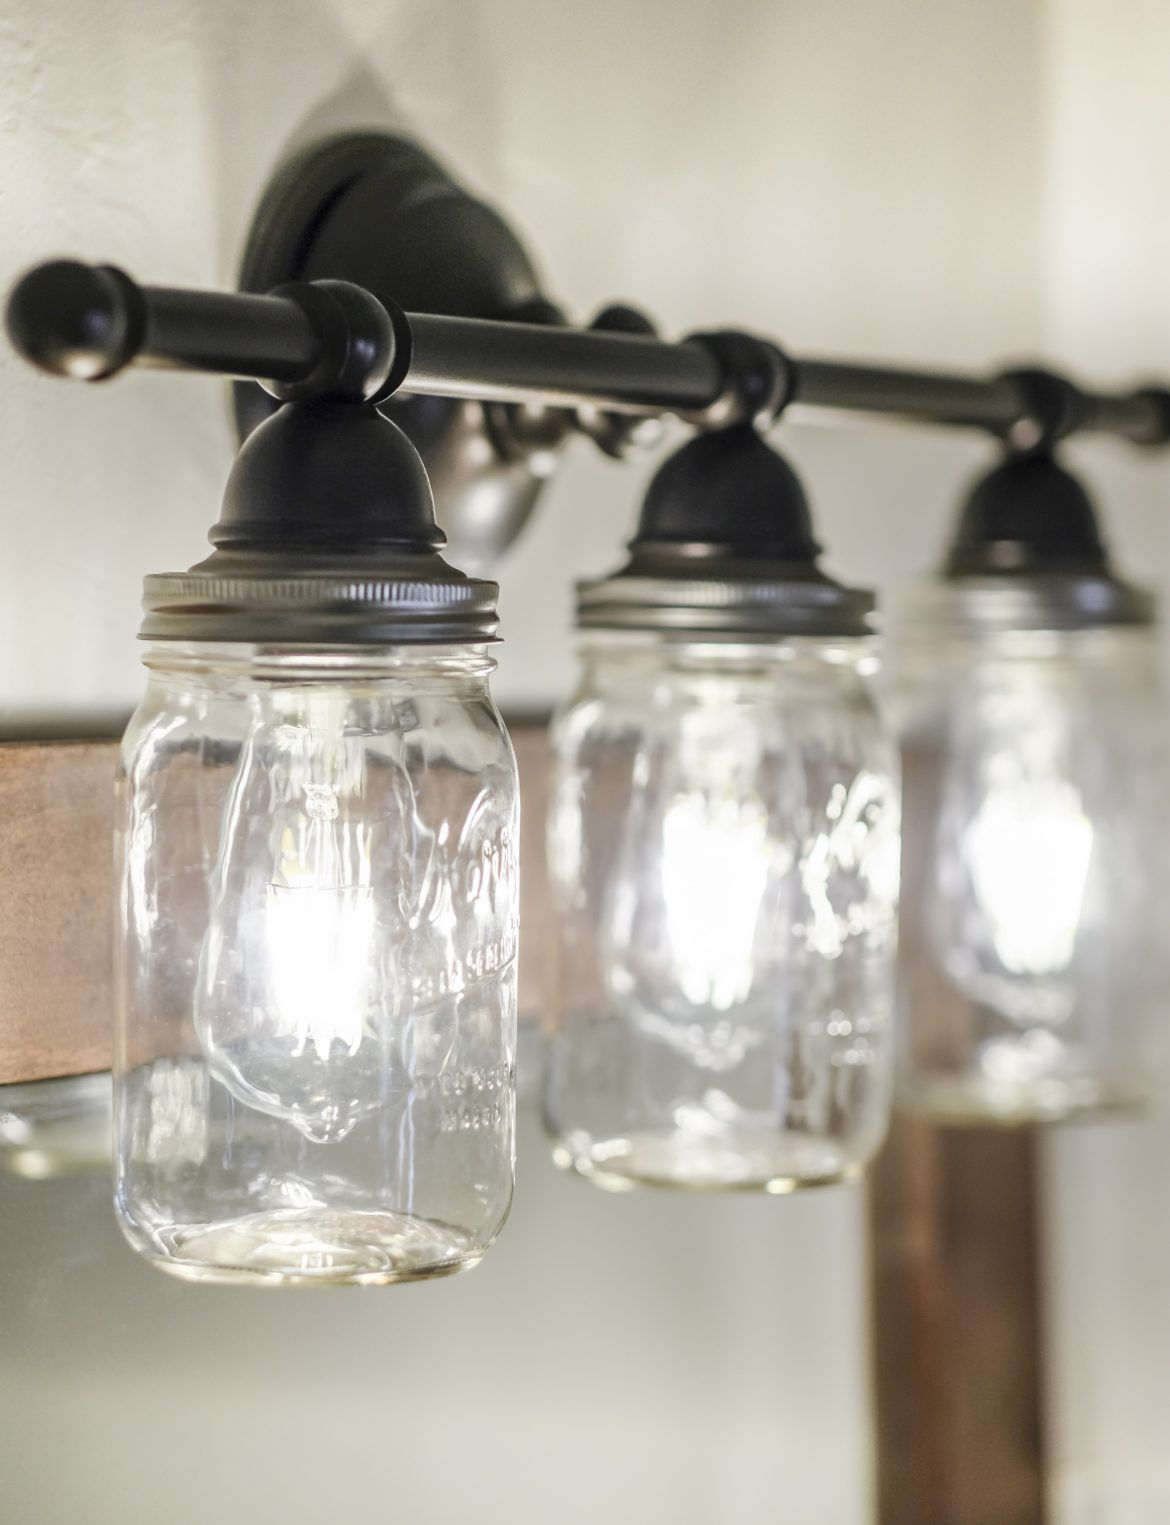 Diy Mason Jar Vanity Light Fixture Joyfully Growing Blog Mason Jar Light Fixture Diy Mason Jar Lights Fixtures Diy